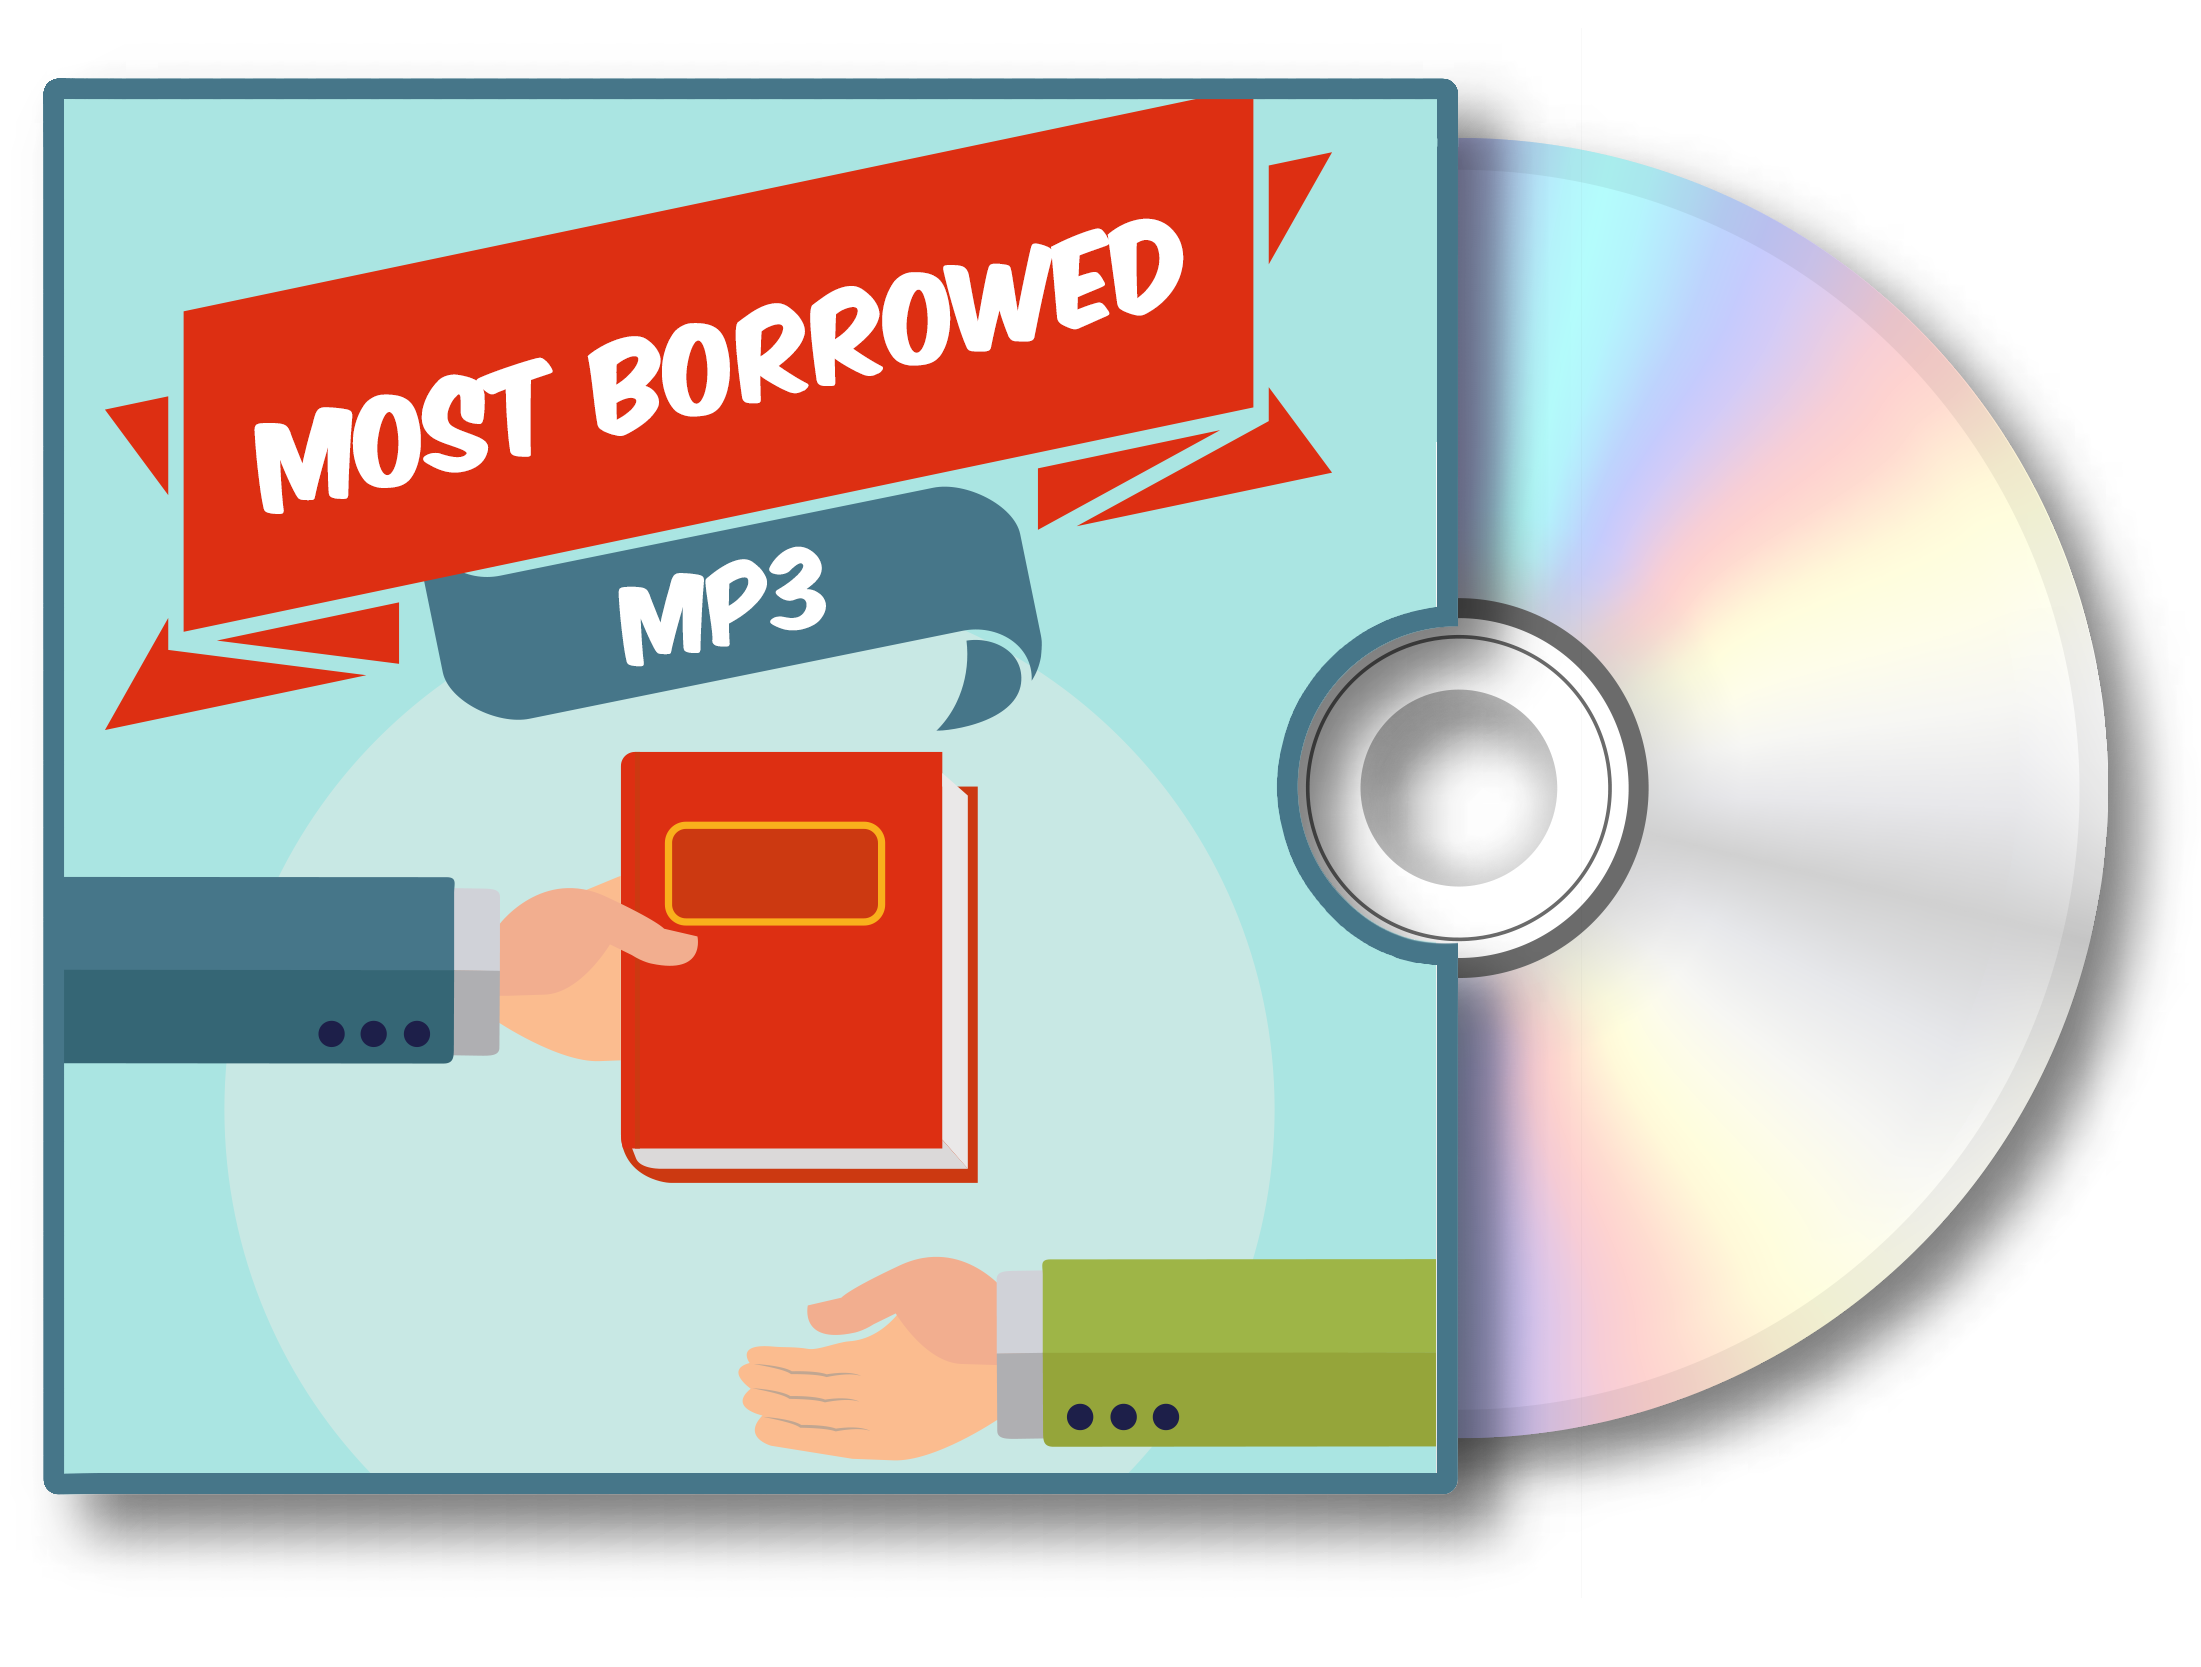 Visit the Most Borrowed MP3s audiobook Bookletter